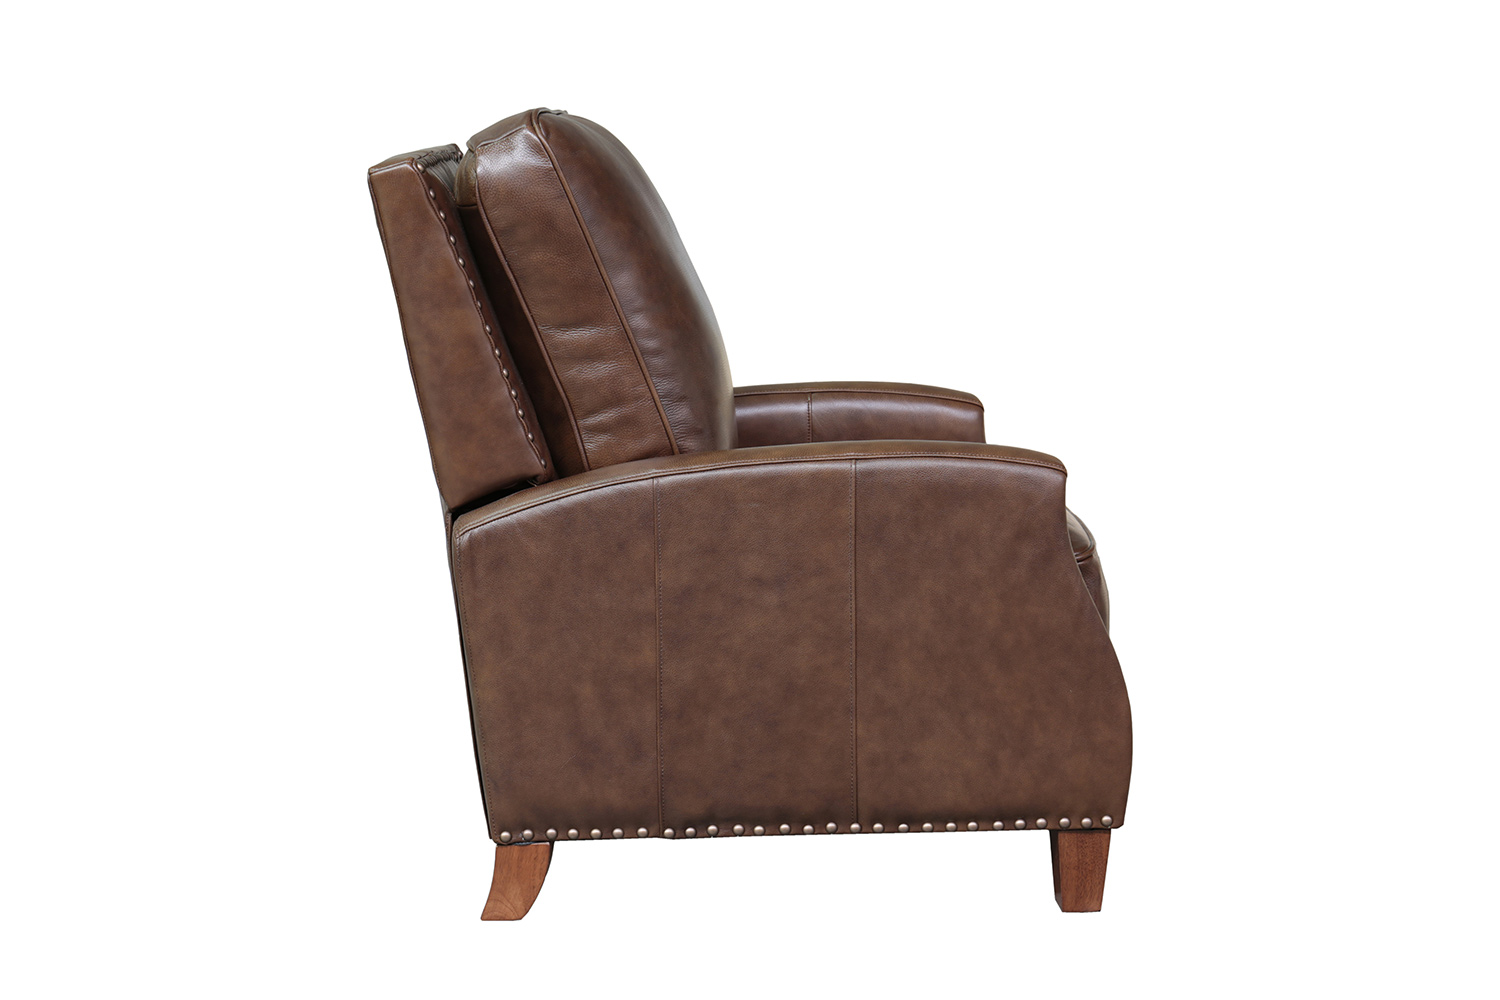 Barcalounger Melrose Recliner Chair - Wenlock Double Chocolate/All Leather